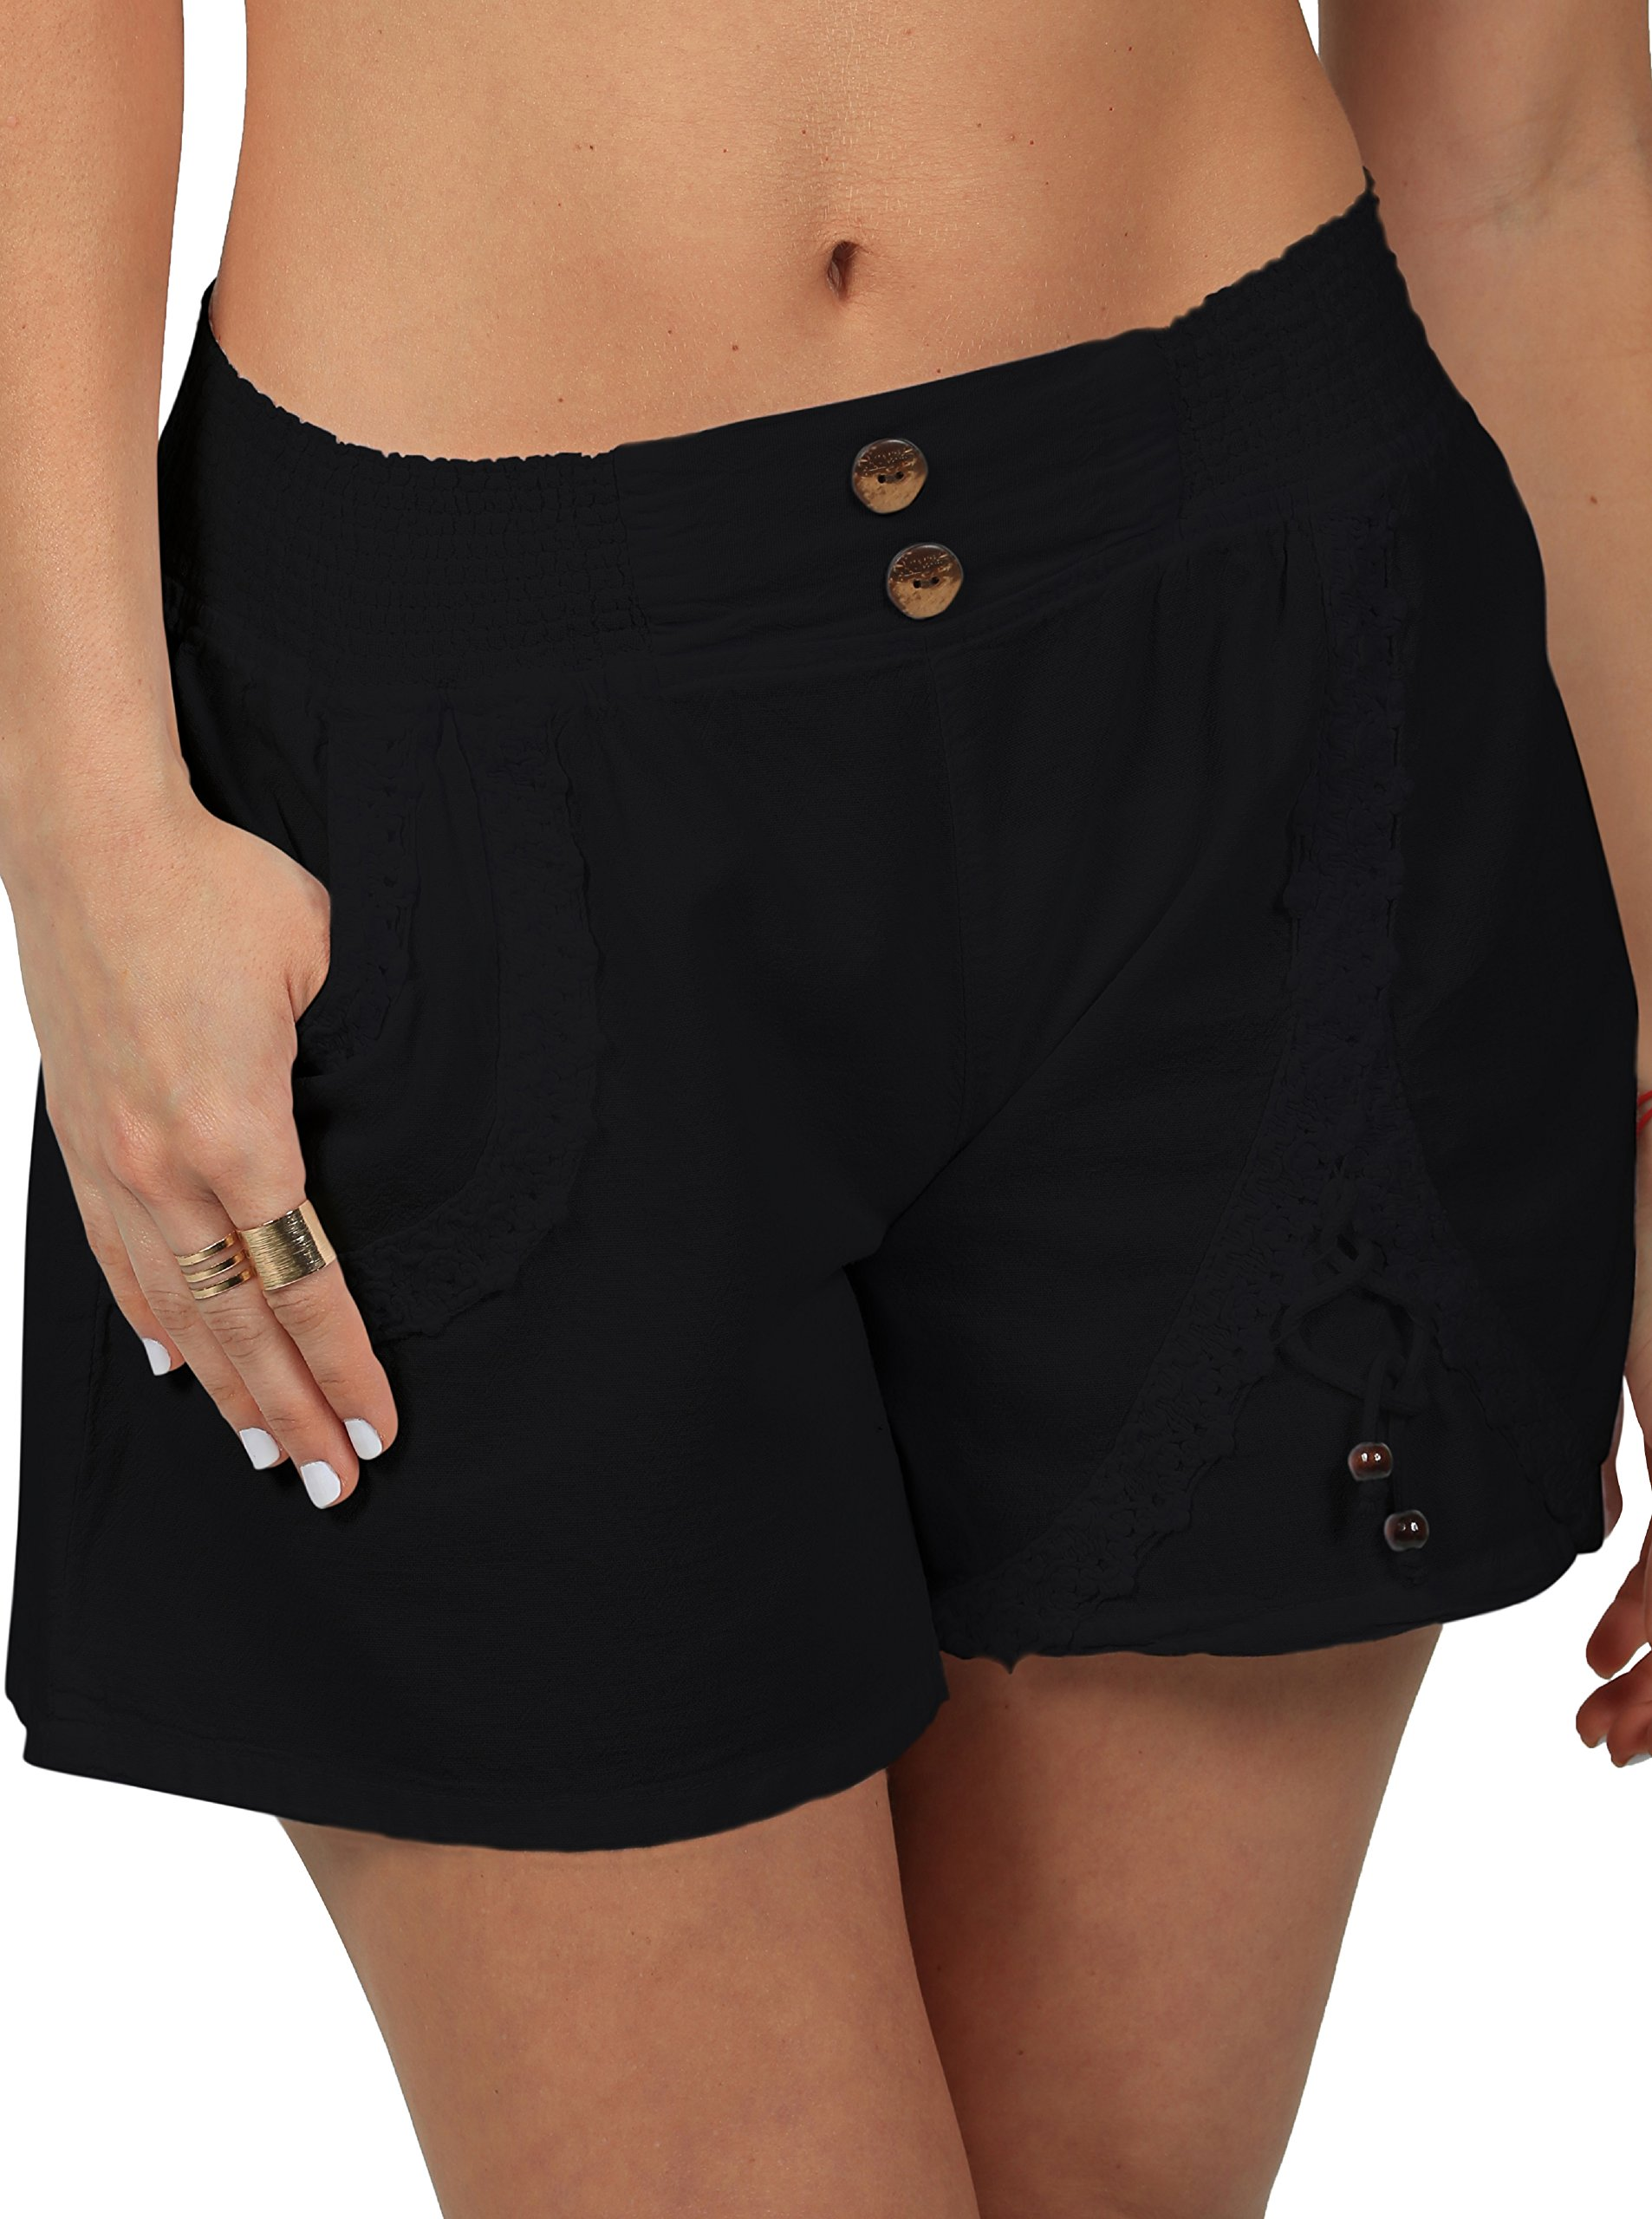 PURE COTTON Women's Cotton Casual Summer Shorts With Lace Embroidered Sexy Skirt Crochet (Black, Large)